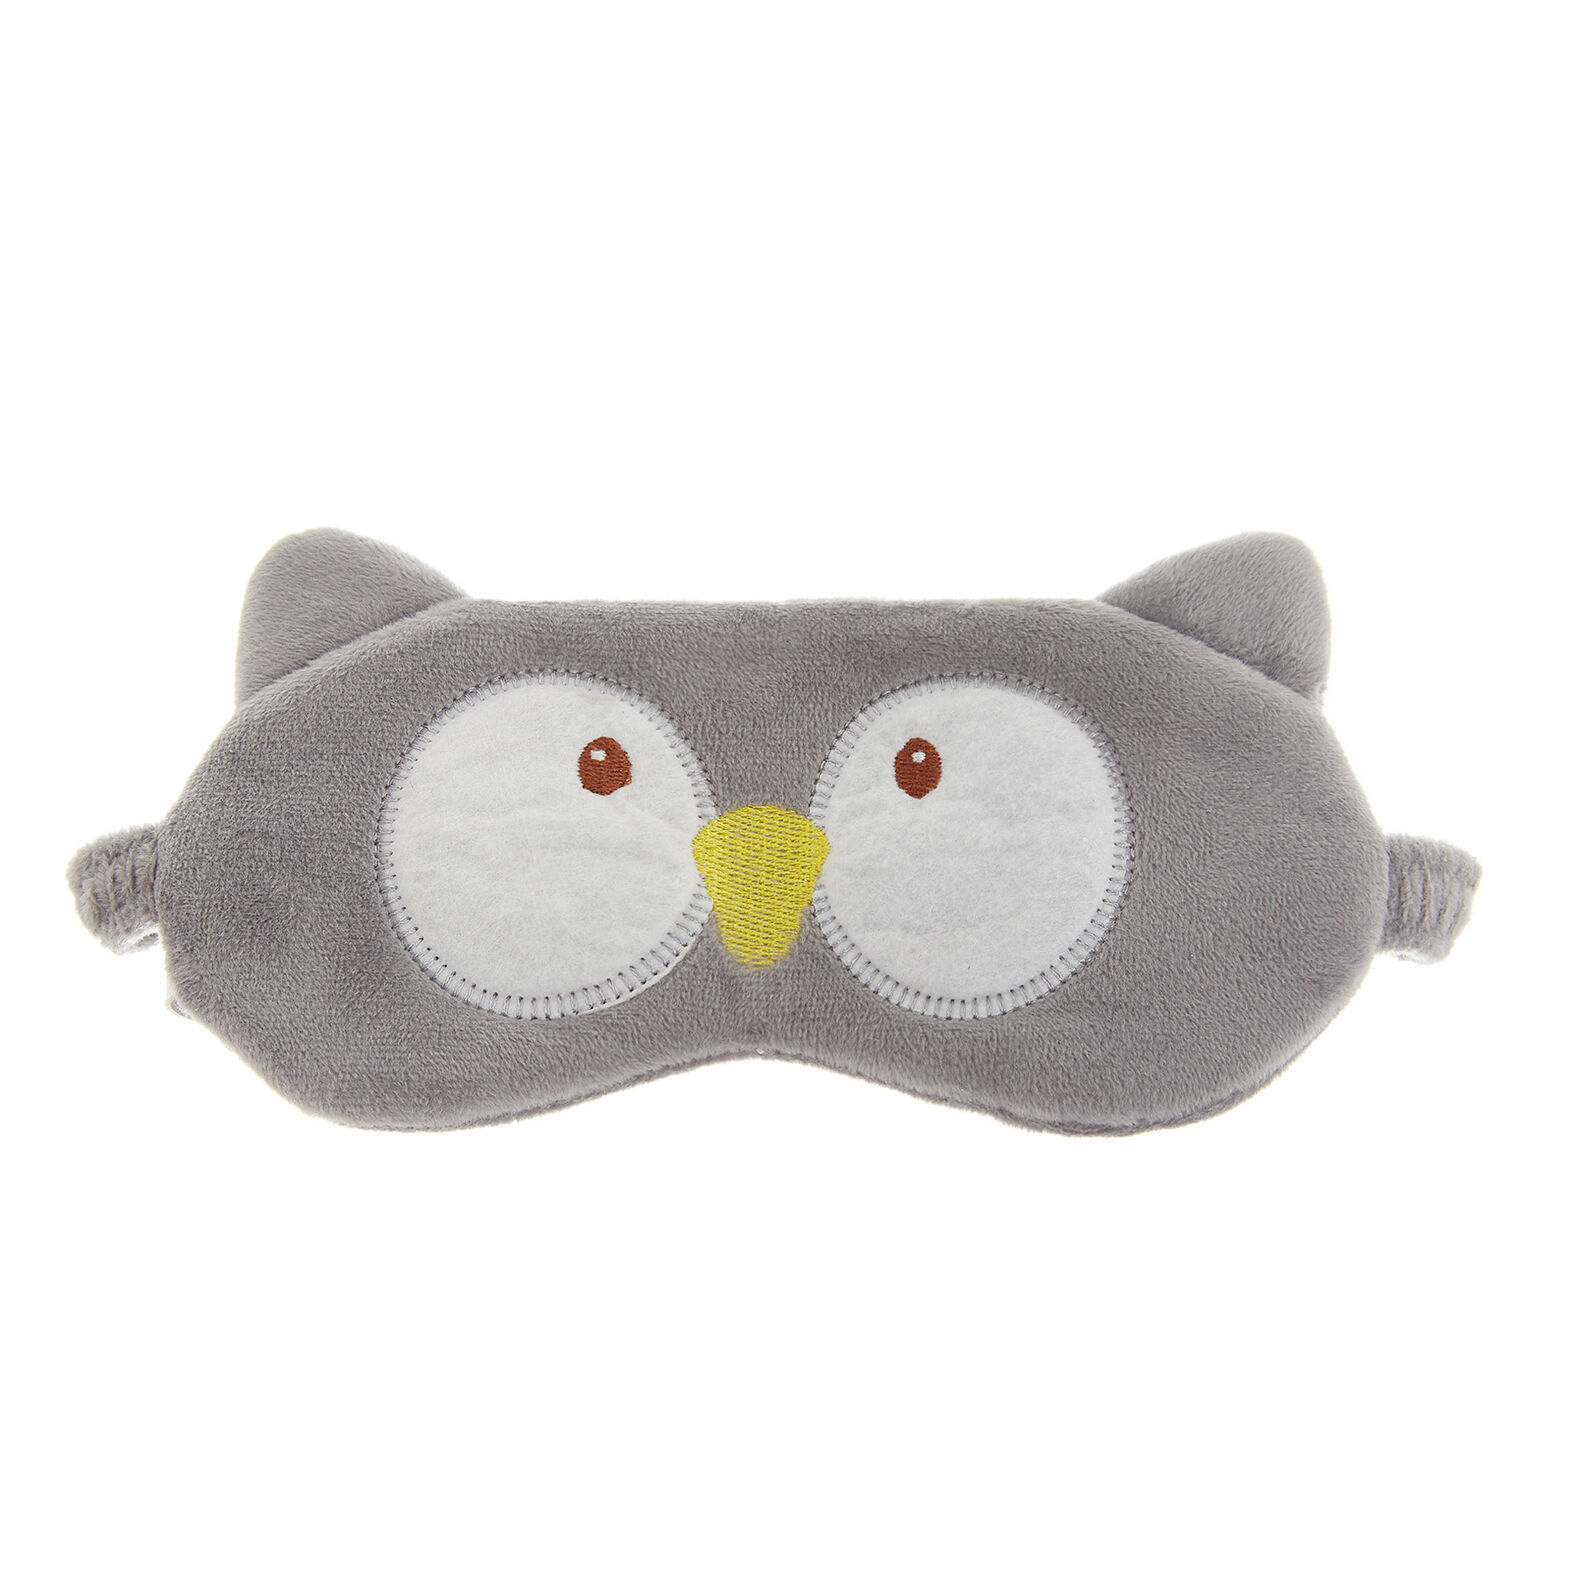 Animal-shaped eye masks